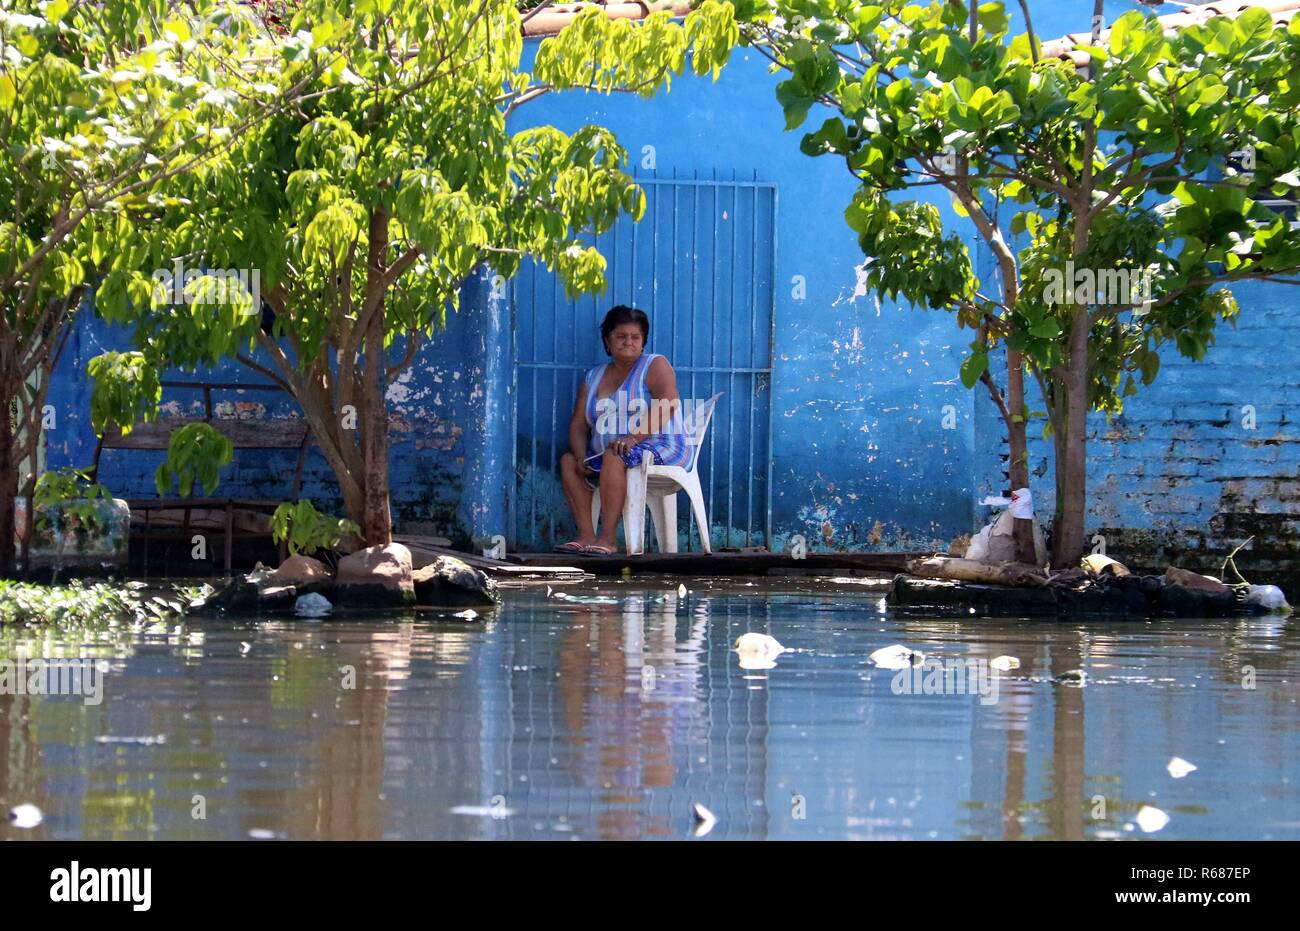 Asuncion, Paraguay. 04th Dec, 2018. A woman remains at her home on a flooded street, in Asuncion, Paraguay, 04 December 2018. Numerous inhabitants of the neighborhood known as 'Banado Sur' are forced to live in unhygienic conditions due to the stagnant water of the floods caused by the rise of the Paraguay river, which have forced 7,500 families to evacuate their homes. Credit: Andres Cristaldo/EFE/Alamy Live News - Stock Image